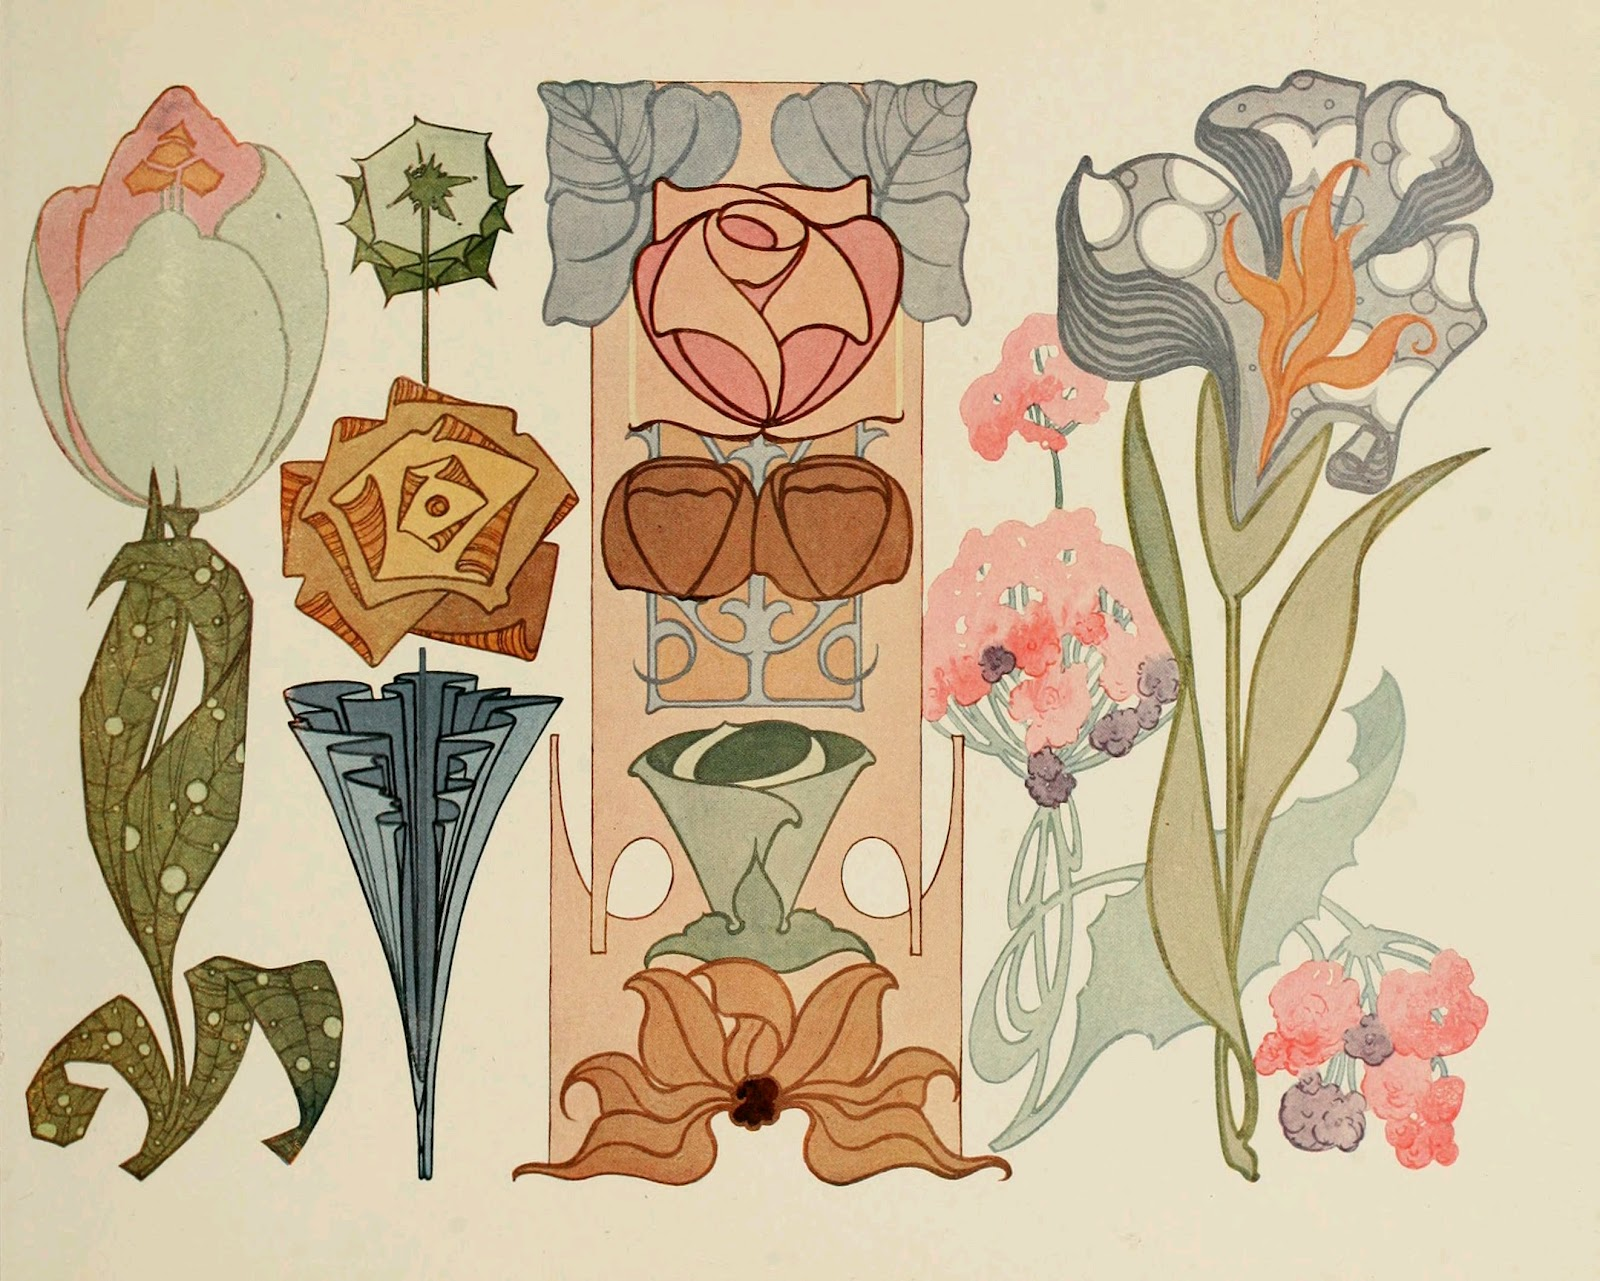 Art Deco Nouveau: Beautiful Art Nouveau Designs